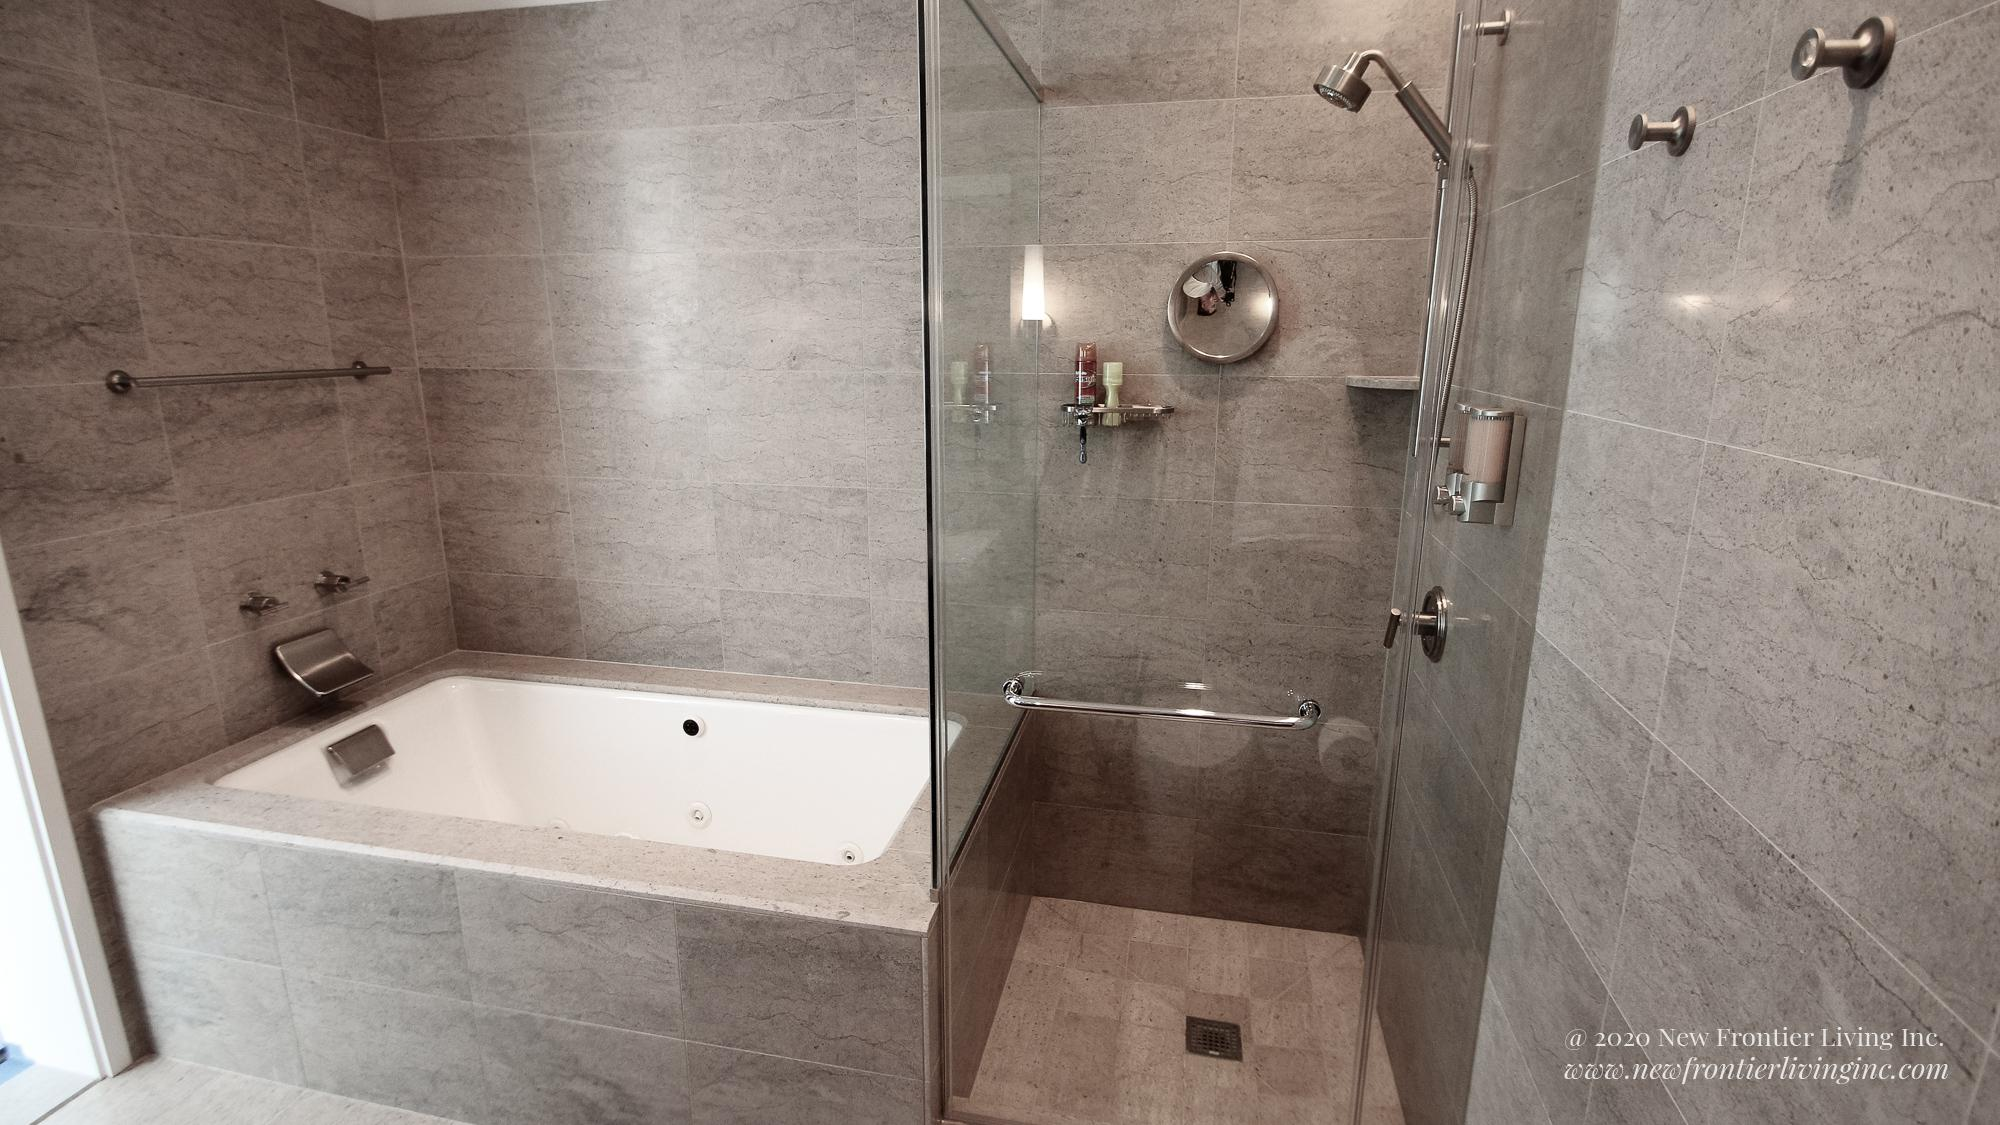 Cream brown bathroom installed by NFL Inc. a walk-in shower and tub on the left